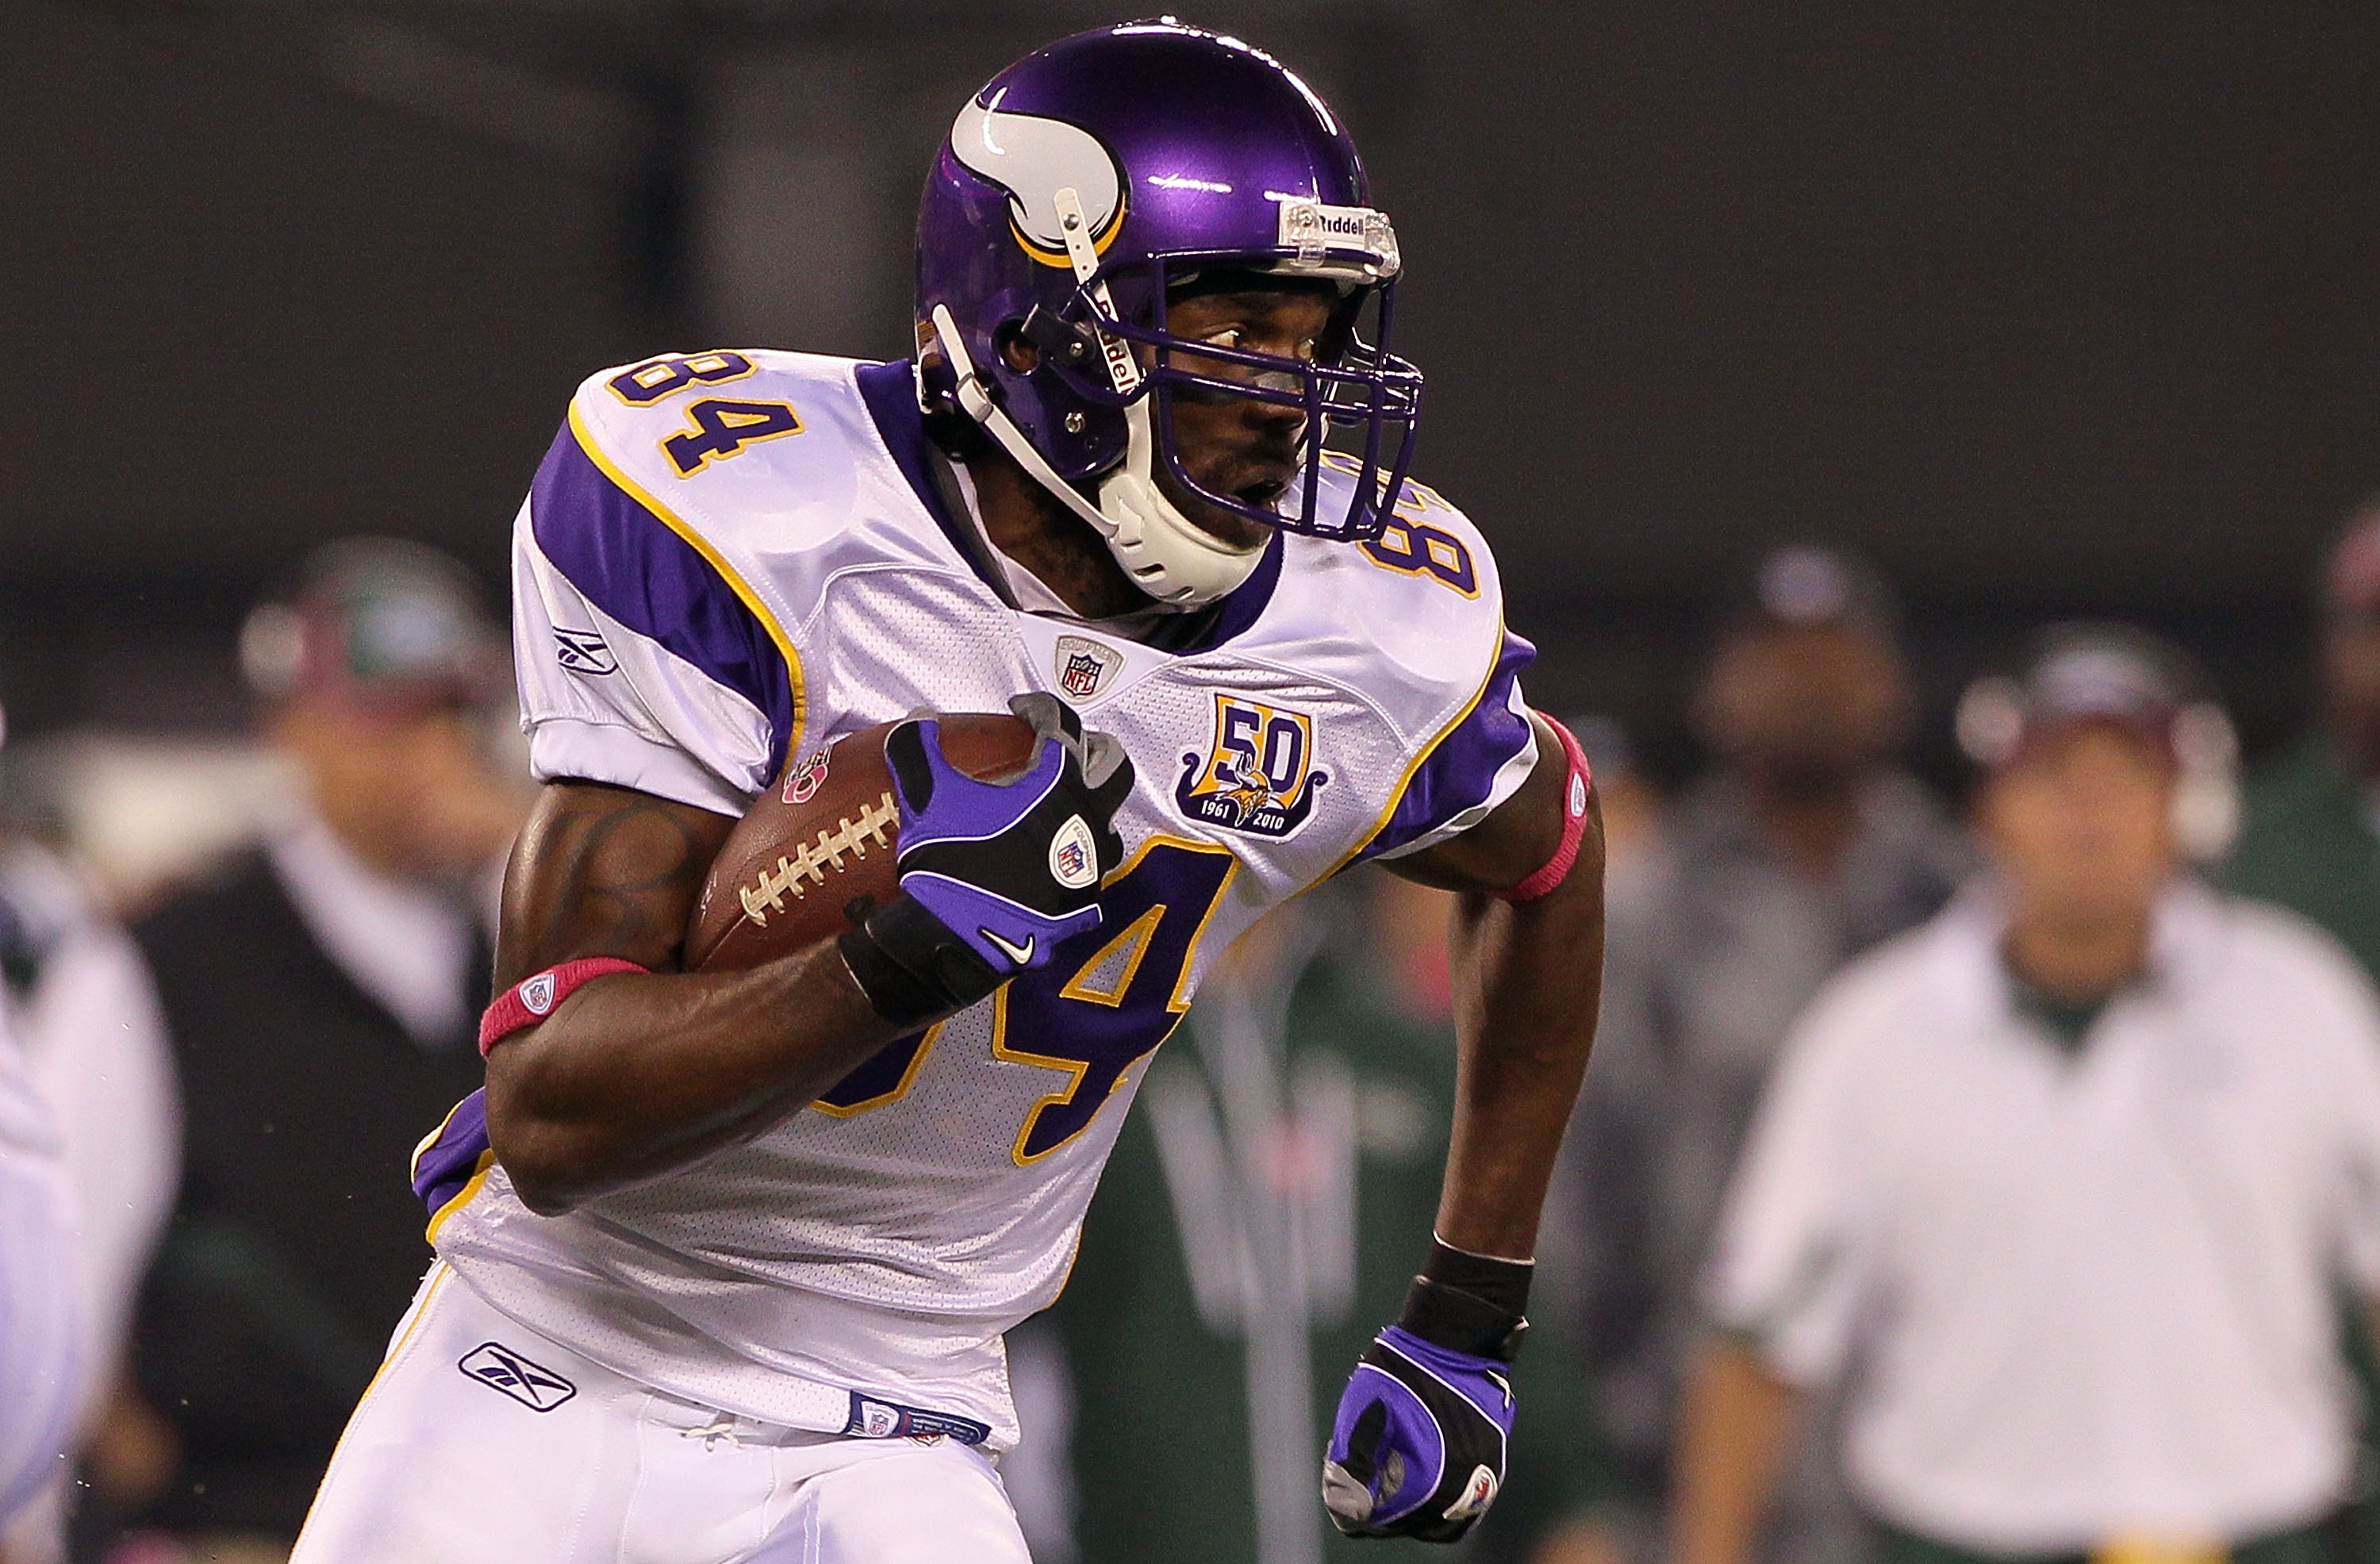 EAST RUTHERFORD, NJ - OCTOBER 11:  Randy Moss #84 of the Minnesota Vikings runs with the ball in the first quarter against the New York Jets at New Meadowlands Stadium on October 11, 2010 in East Rutherford, New Jersey.  (Photo by Jim McIsaac/Getty Images